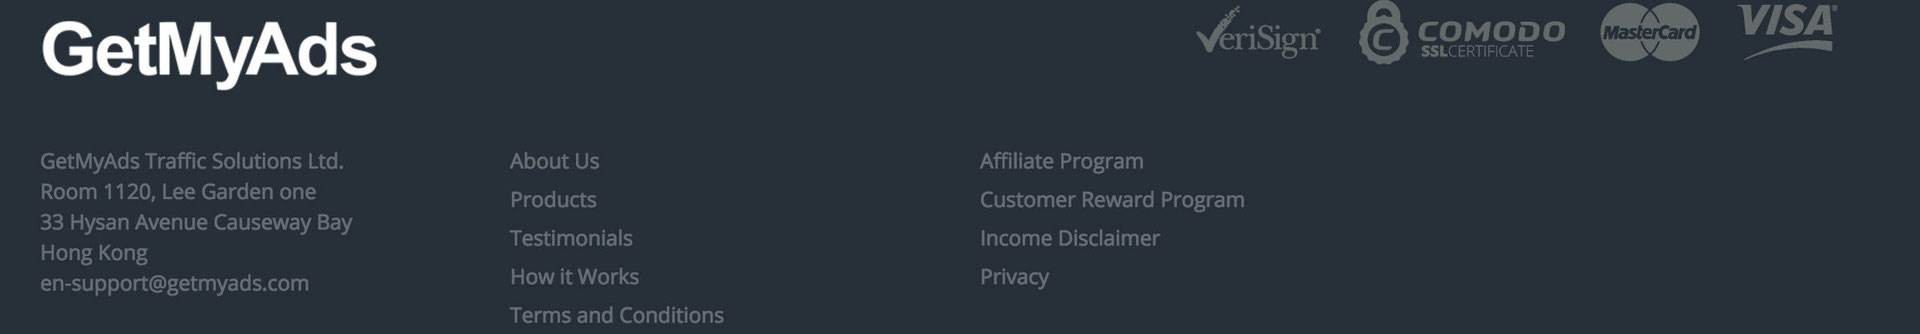 Get My Ads 24 Review, Is Get My Ads Scam or Not?